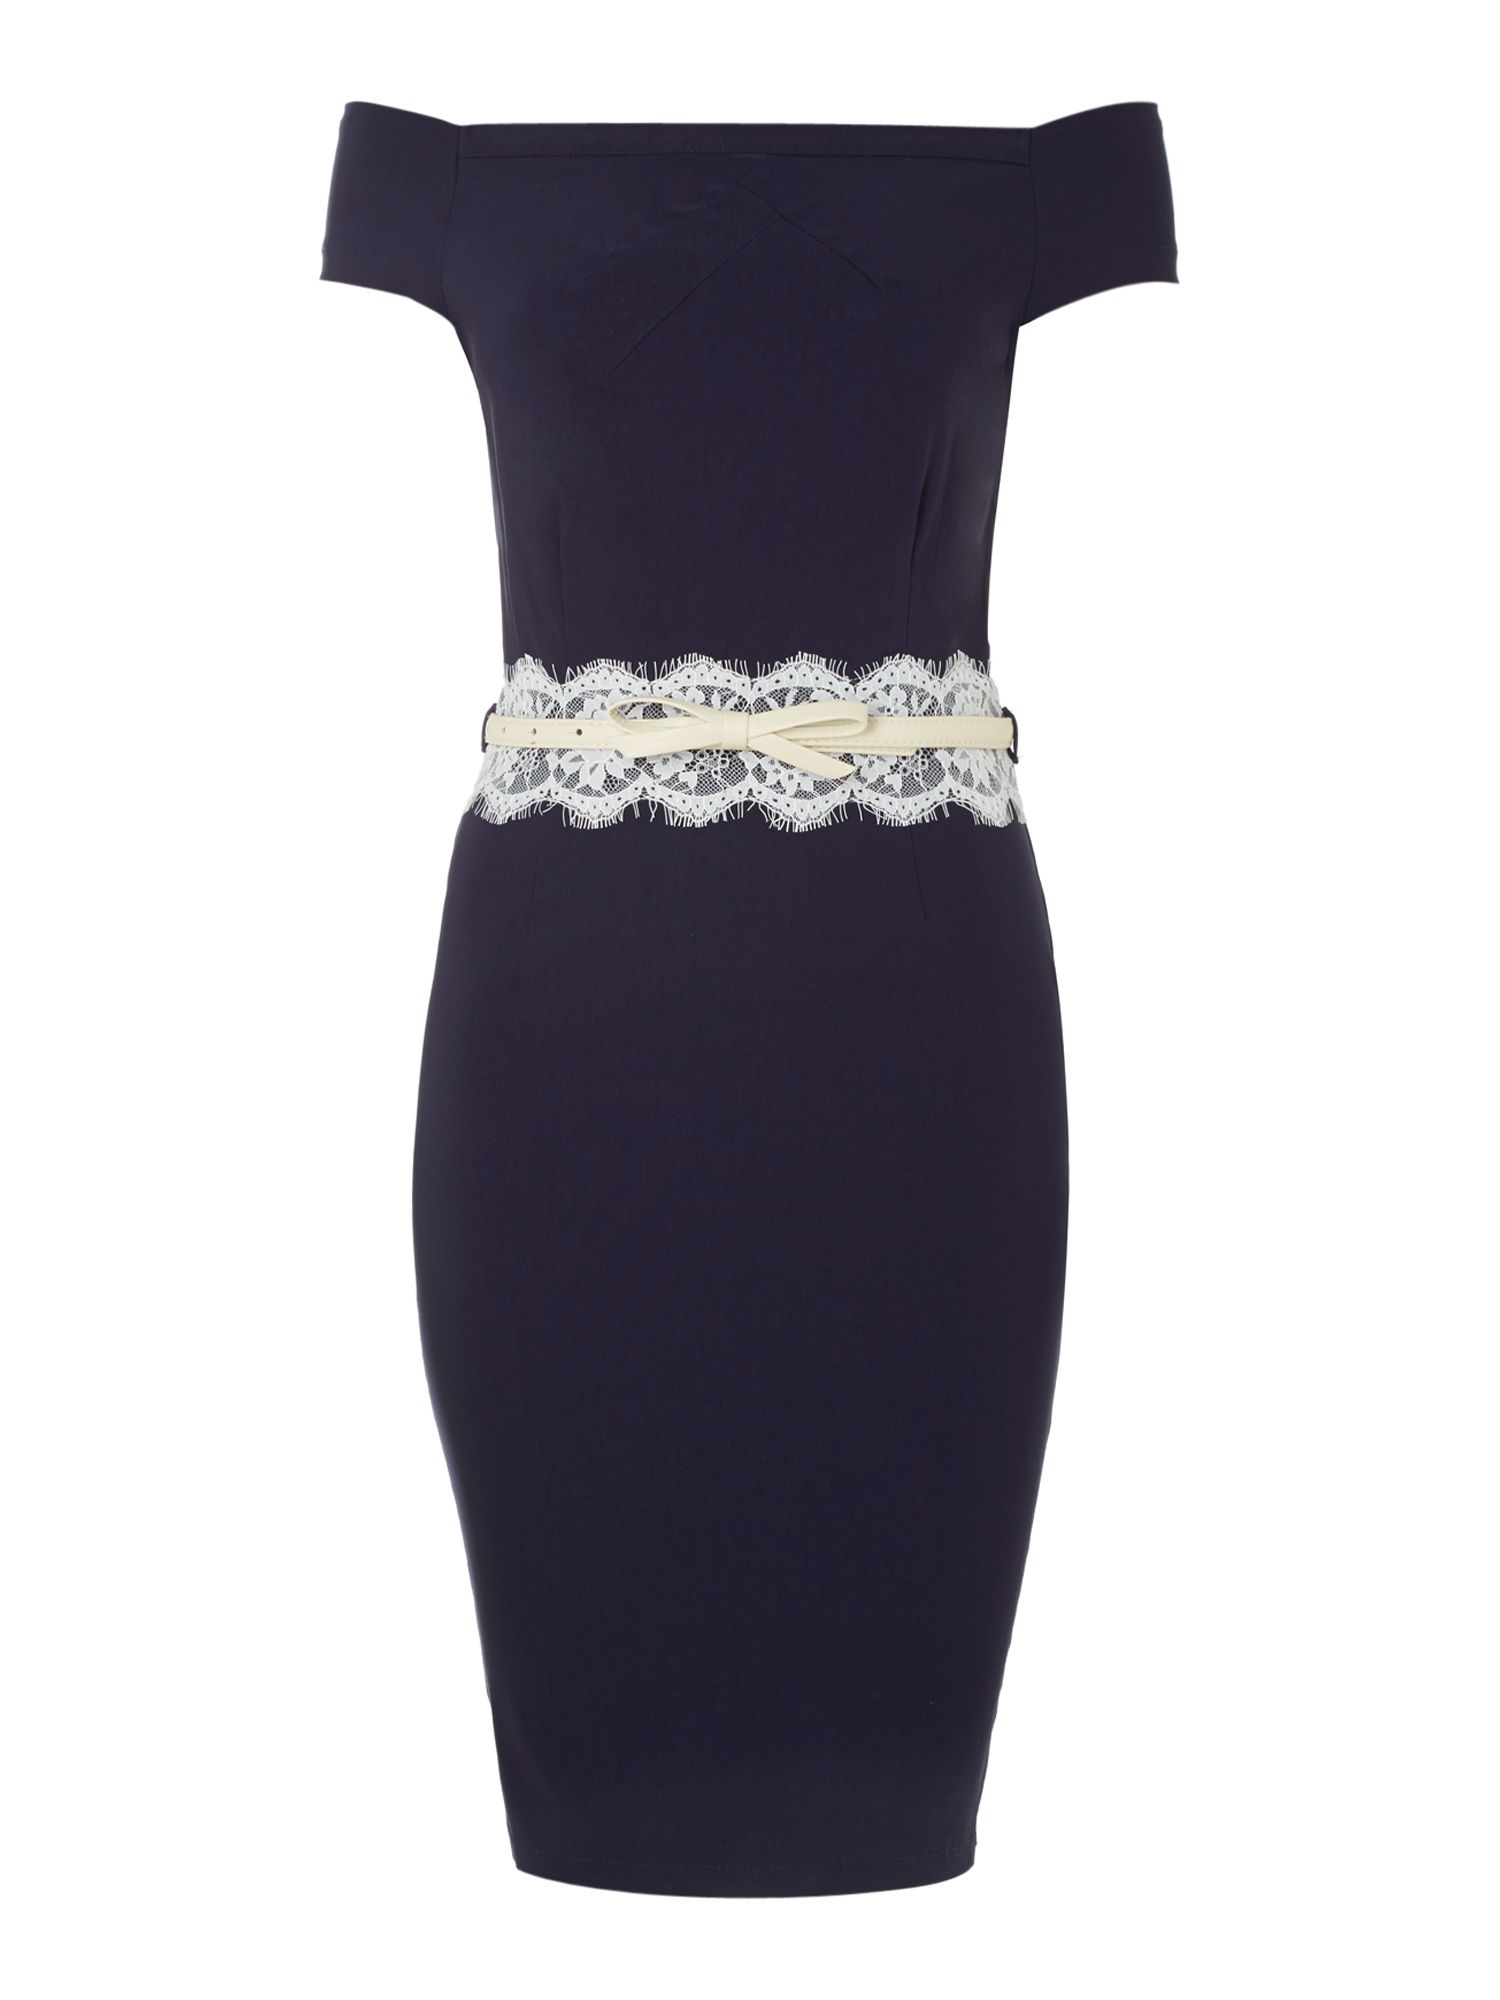 Capped sleeved off the shoulder lace bodycon